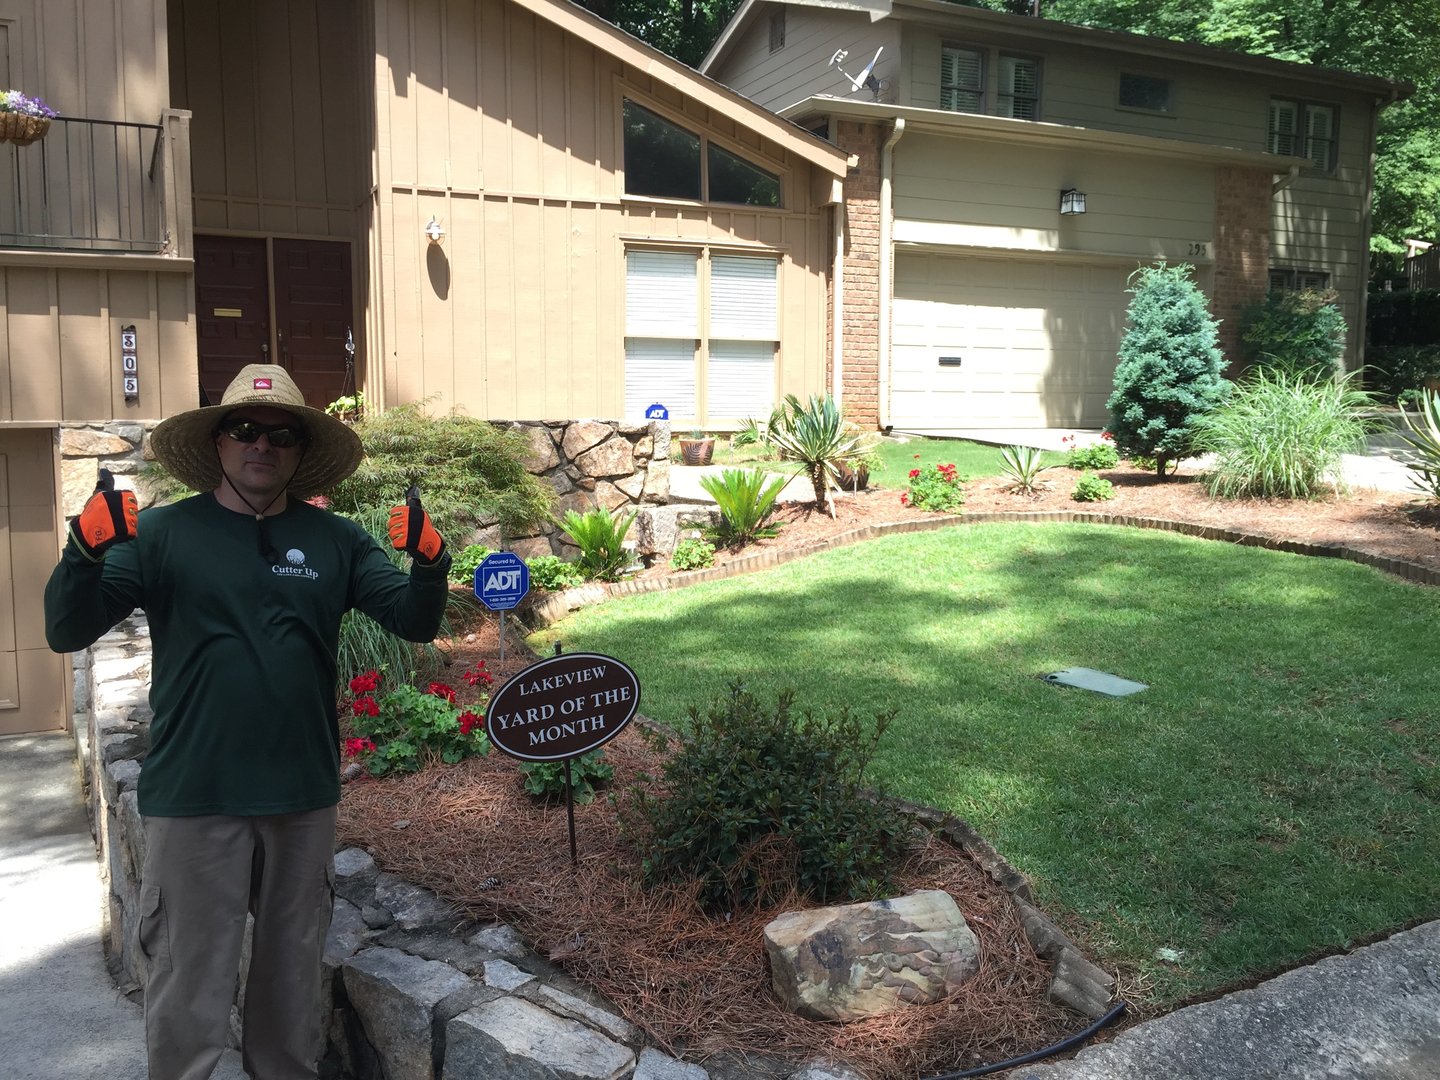 lawn care services lawn maintenance service cutter up roswell ga